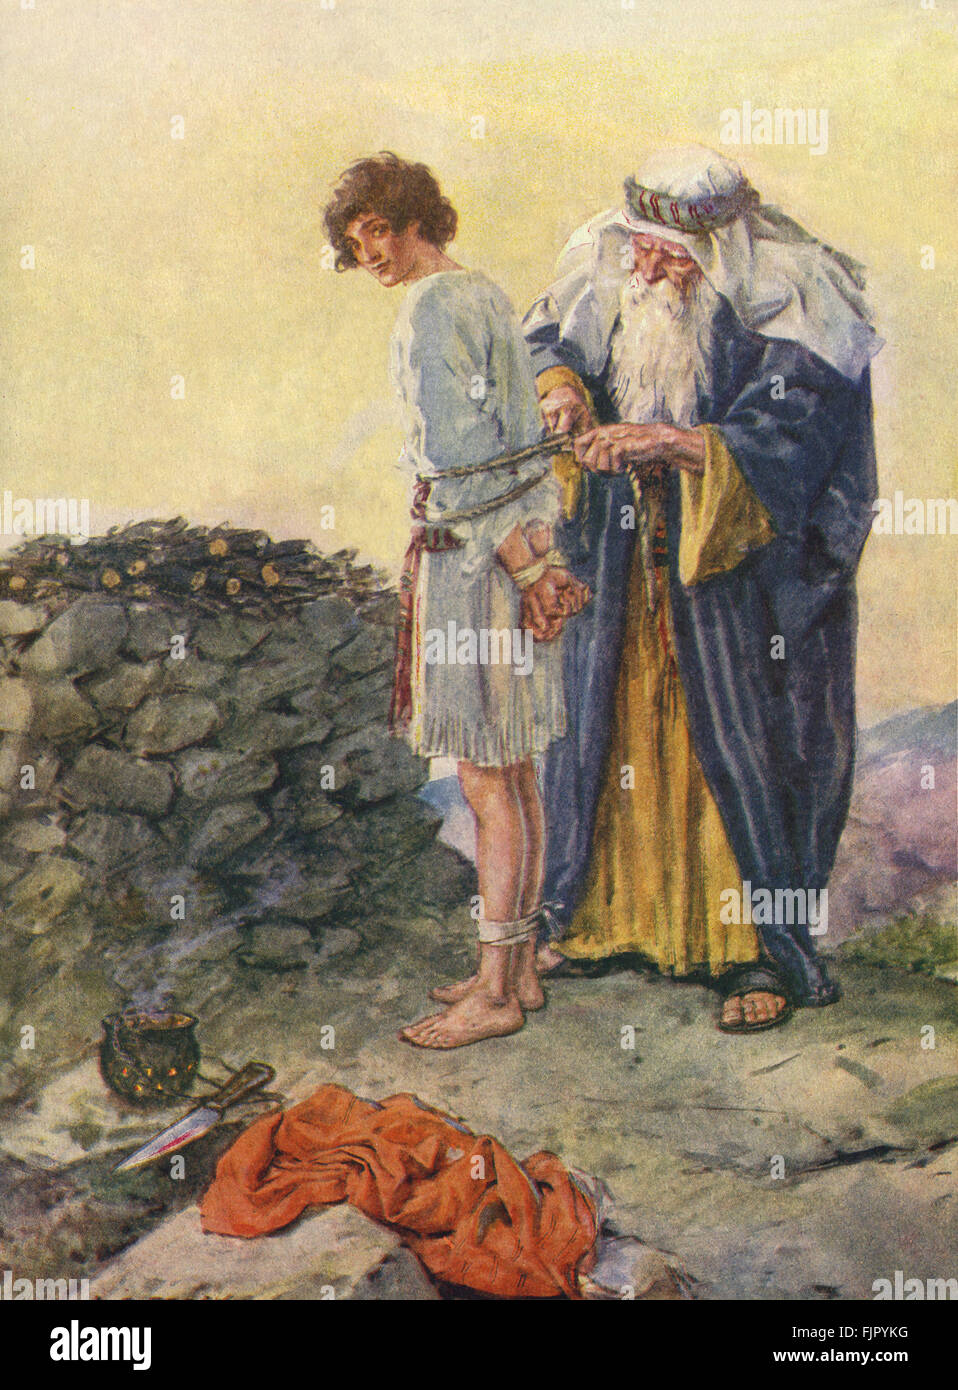 Abraham binds Isaac as a sacrifice. Caption reads: Is Isaac to die?  Genesis 22.  Illustration by C E Brock 1870 - Stock Image